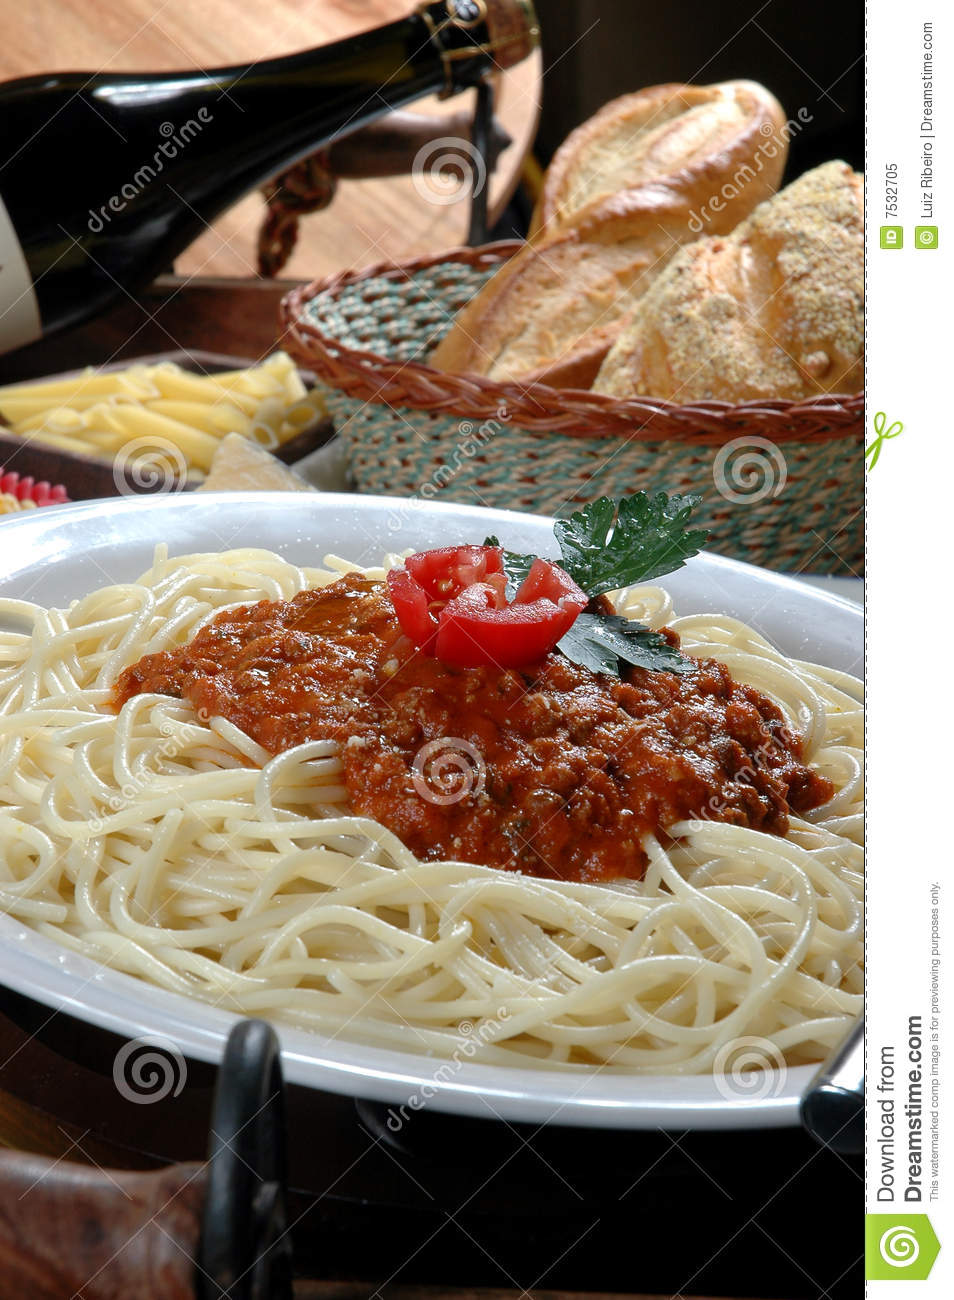 Macaroni Stock Image. Image Of Aromatic, Setting, Cuisine